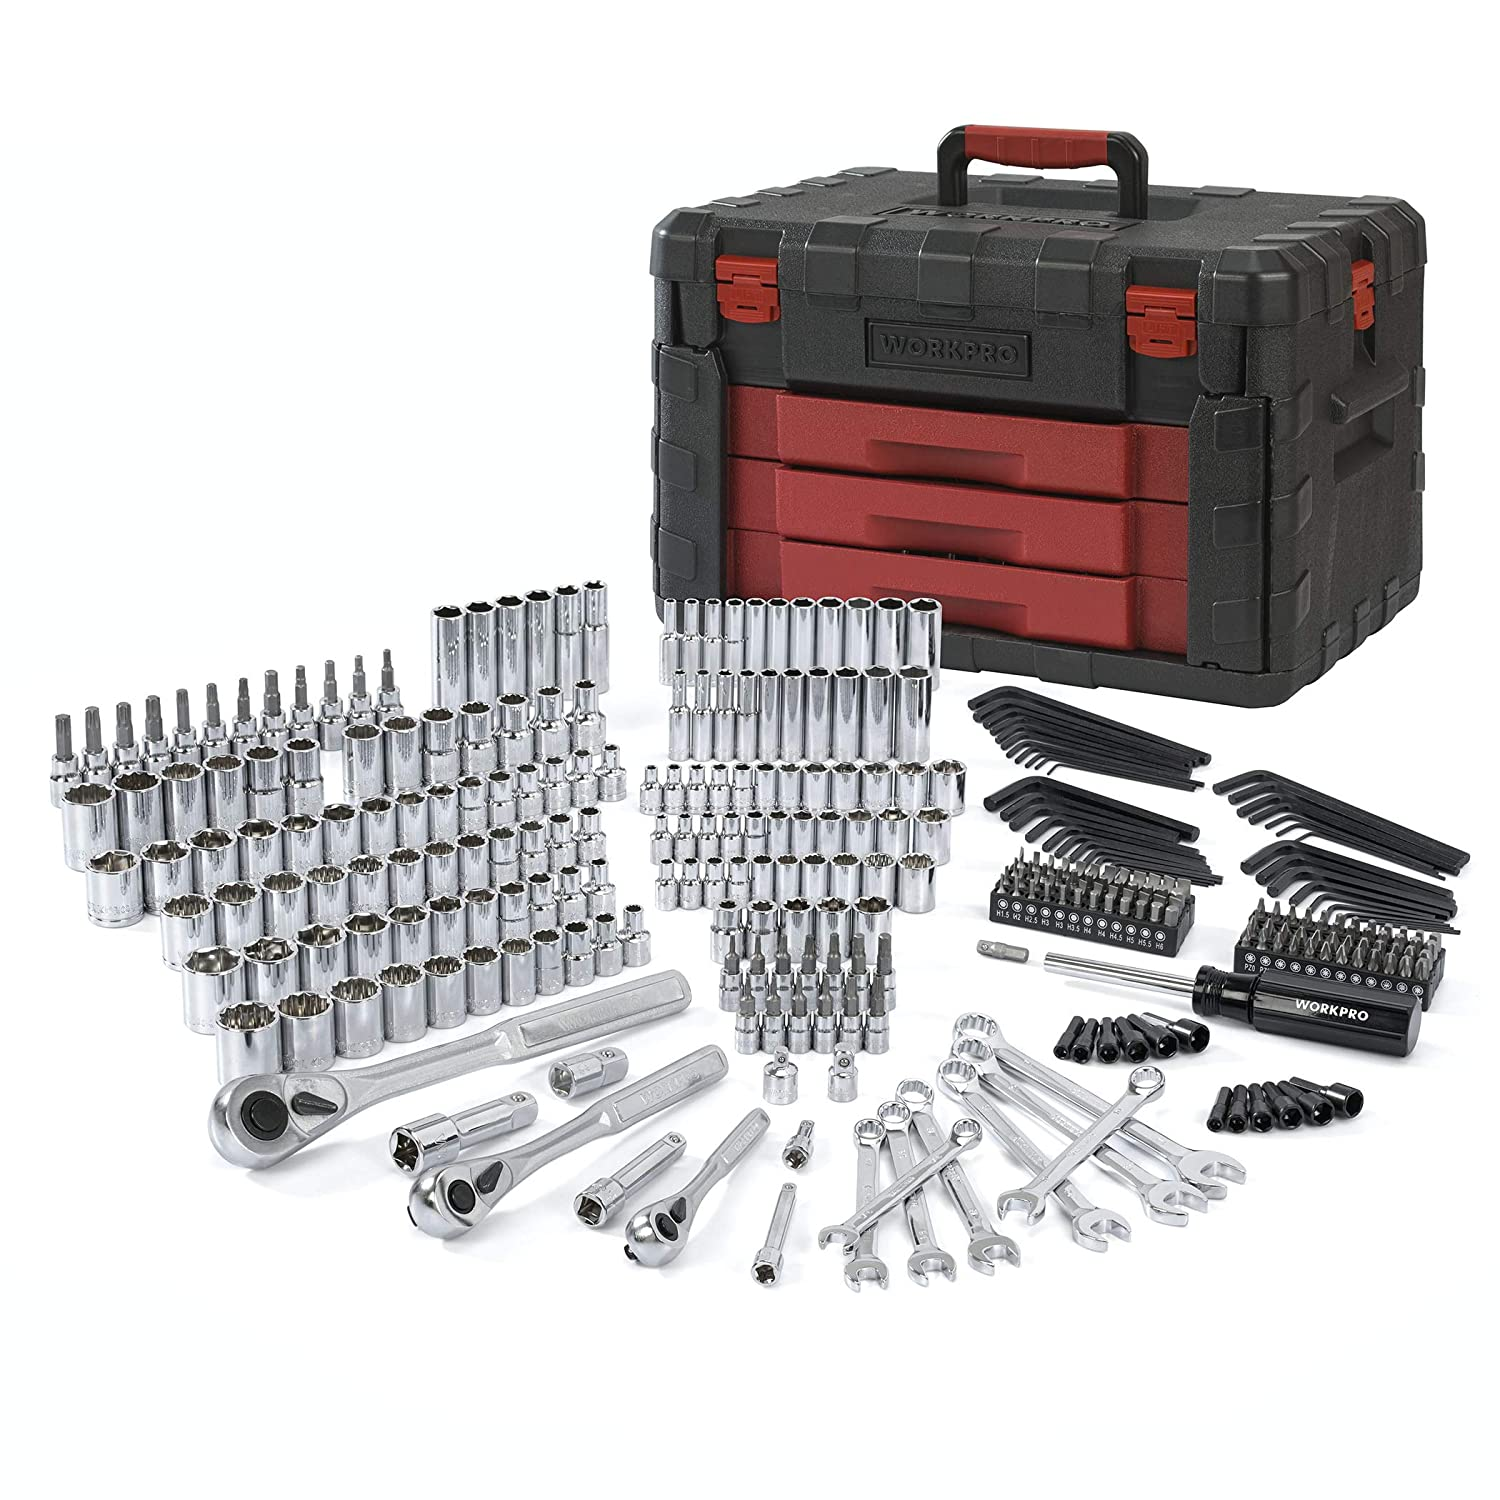 WORKPRO 320-Piece Mechanics Tool Kit, Professional Socket Set with Heavy Duty Case Box HANGZHOU GREATSTAR INDUSTRIAL CO. LTD